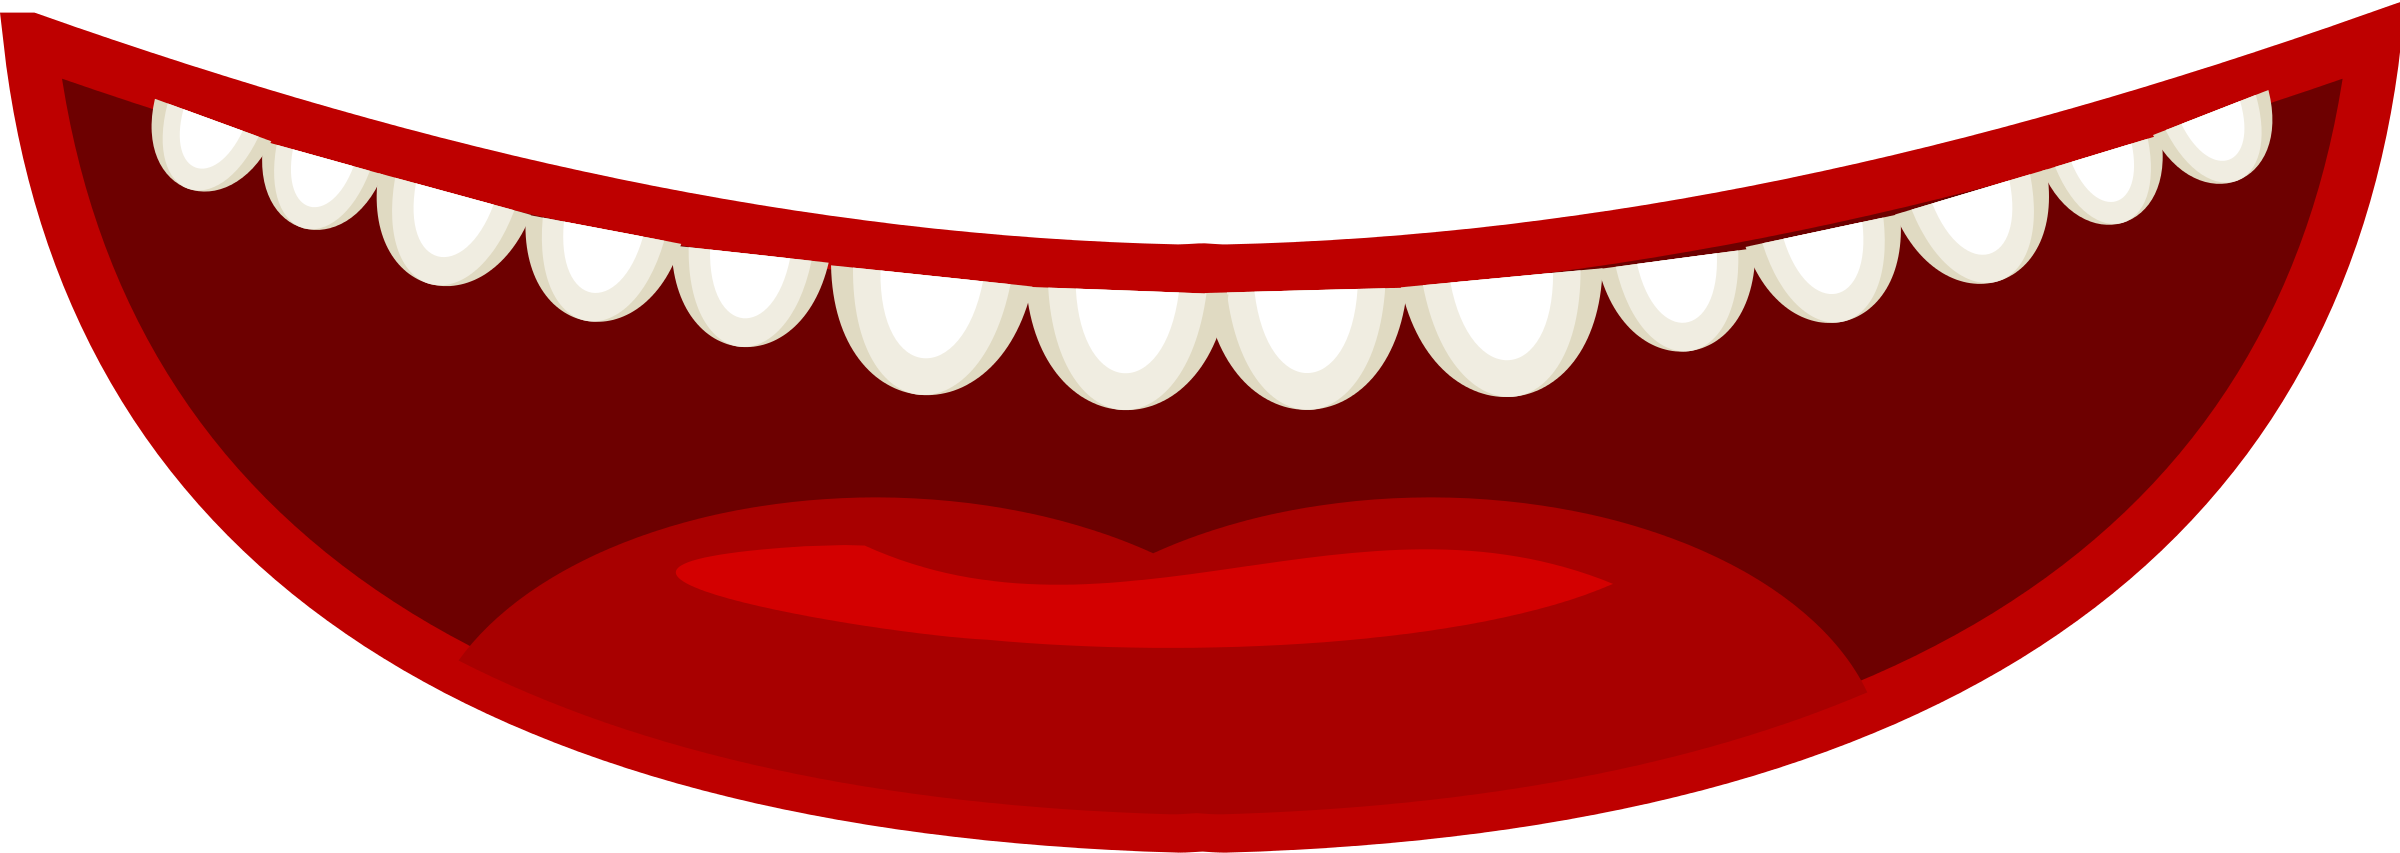 Joker mouth clipart picture free library Big Mouth Clipart - Clipart Kid picture free library